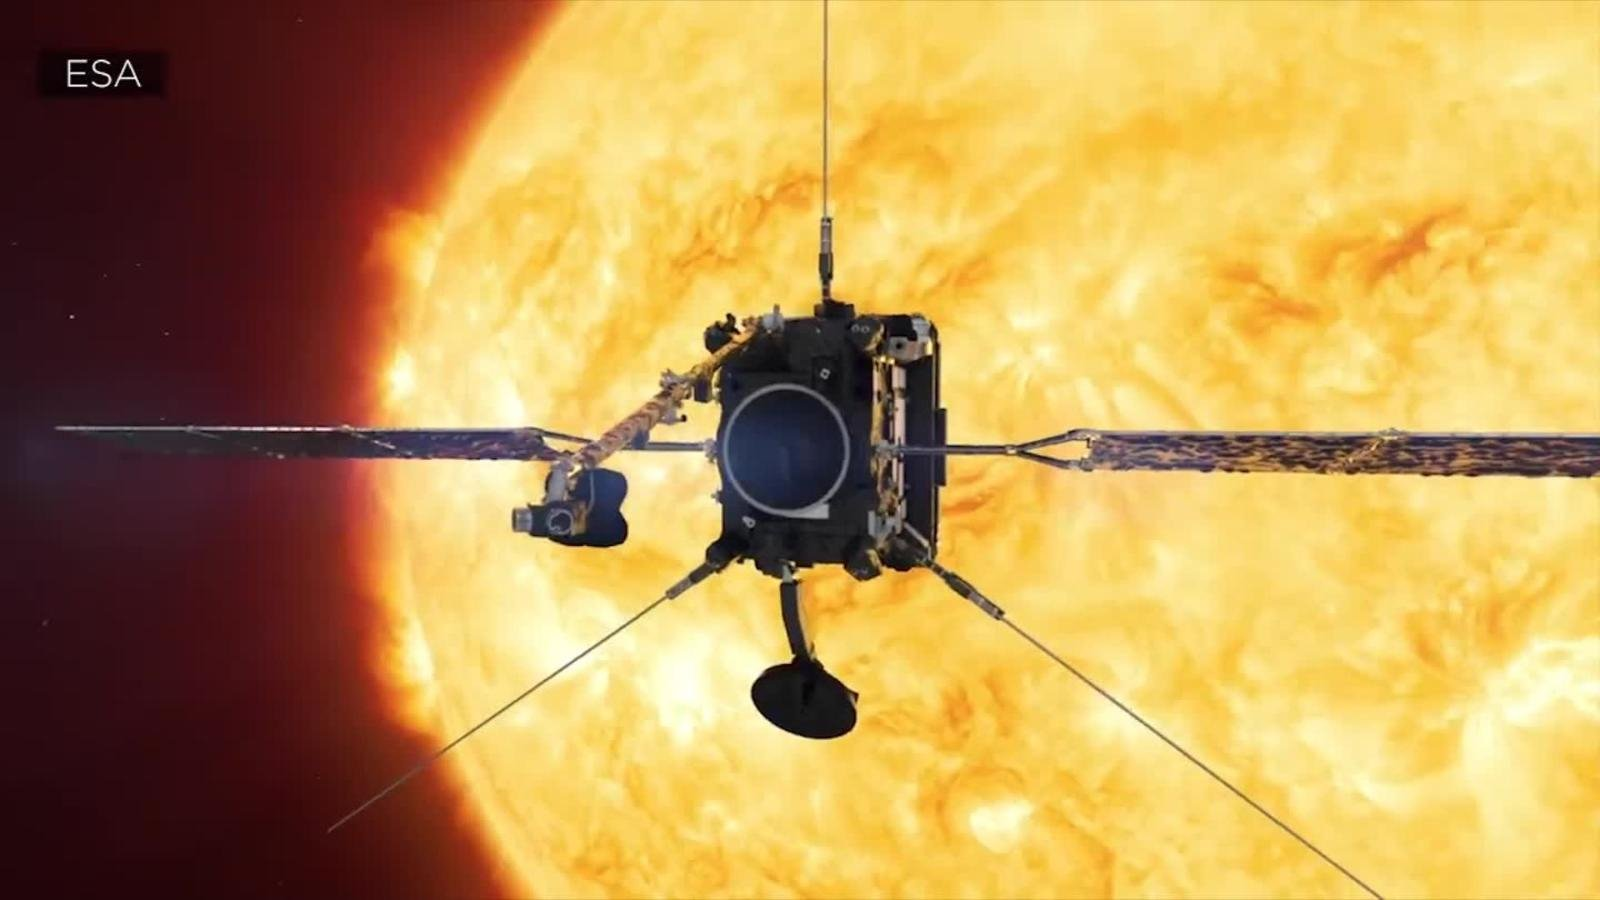 The probe will also explore the sun